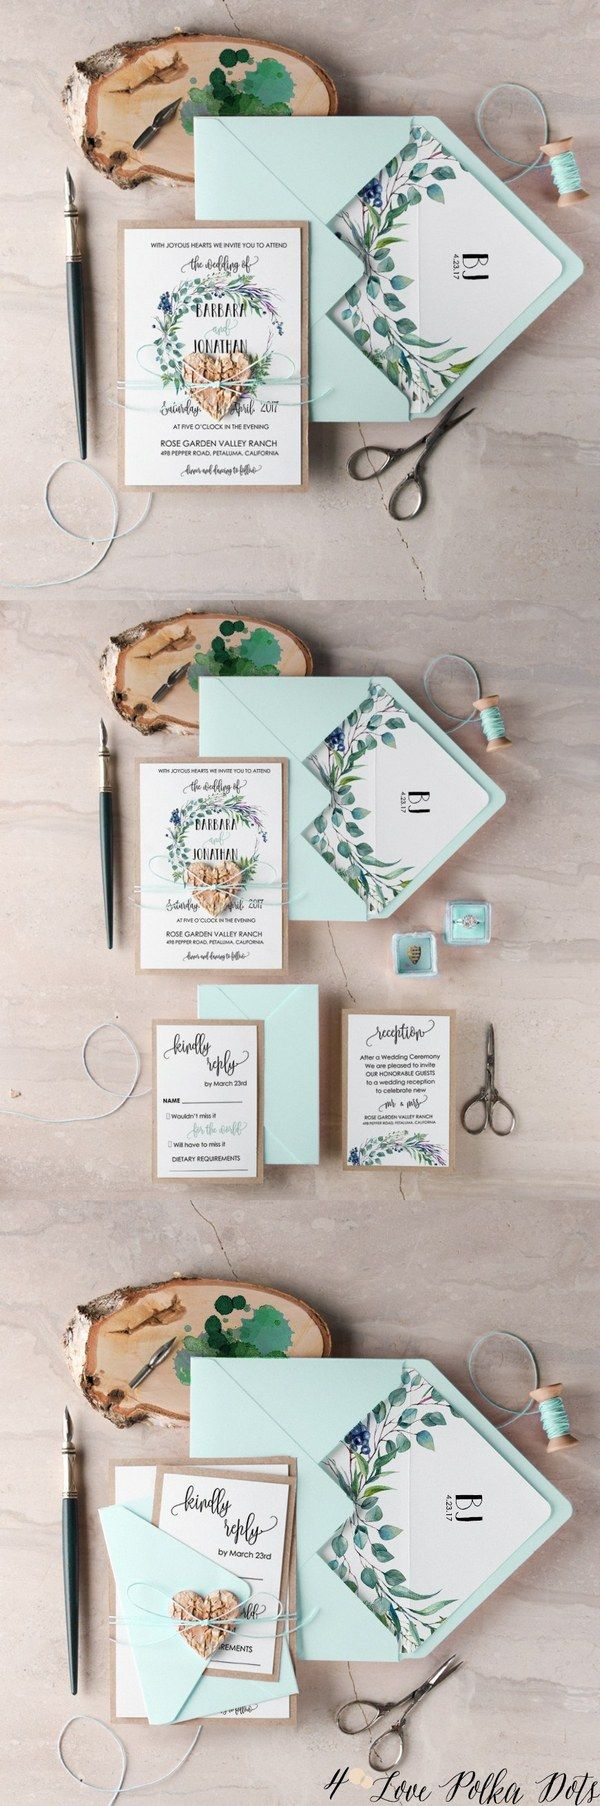 Greenery watercolor wreath wedding invitations #greenerywedding #weddingideas #bohowedding